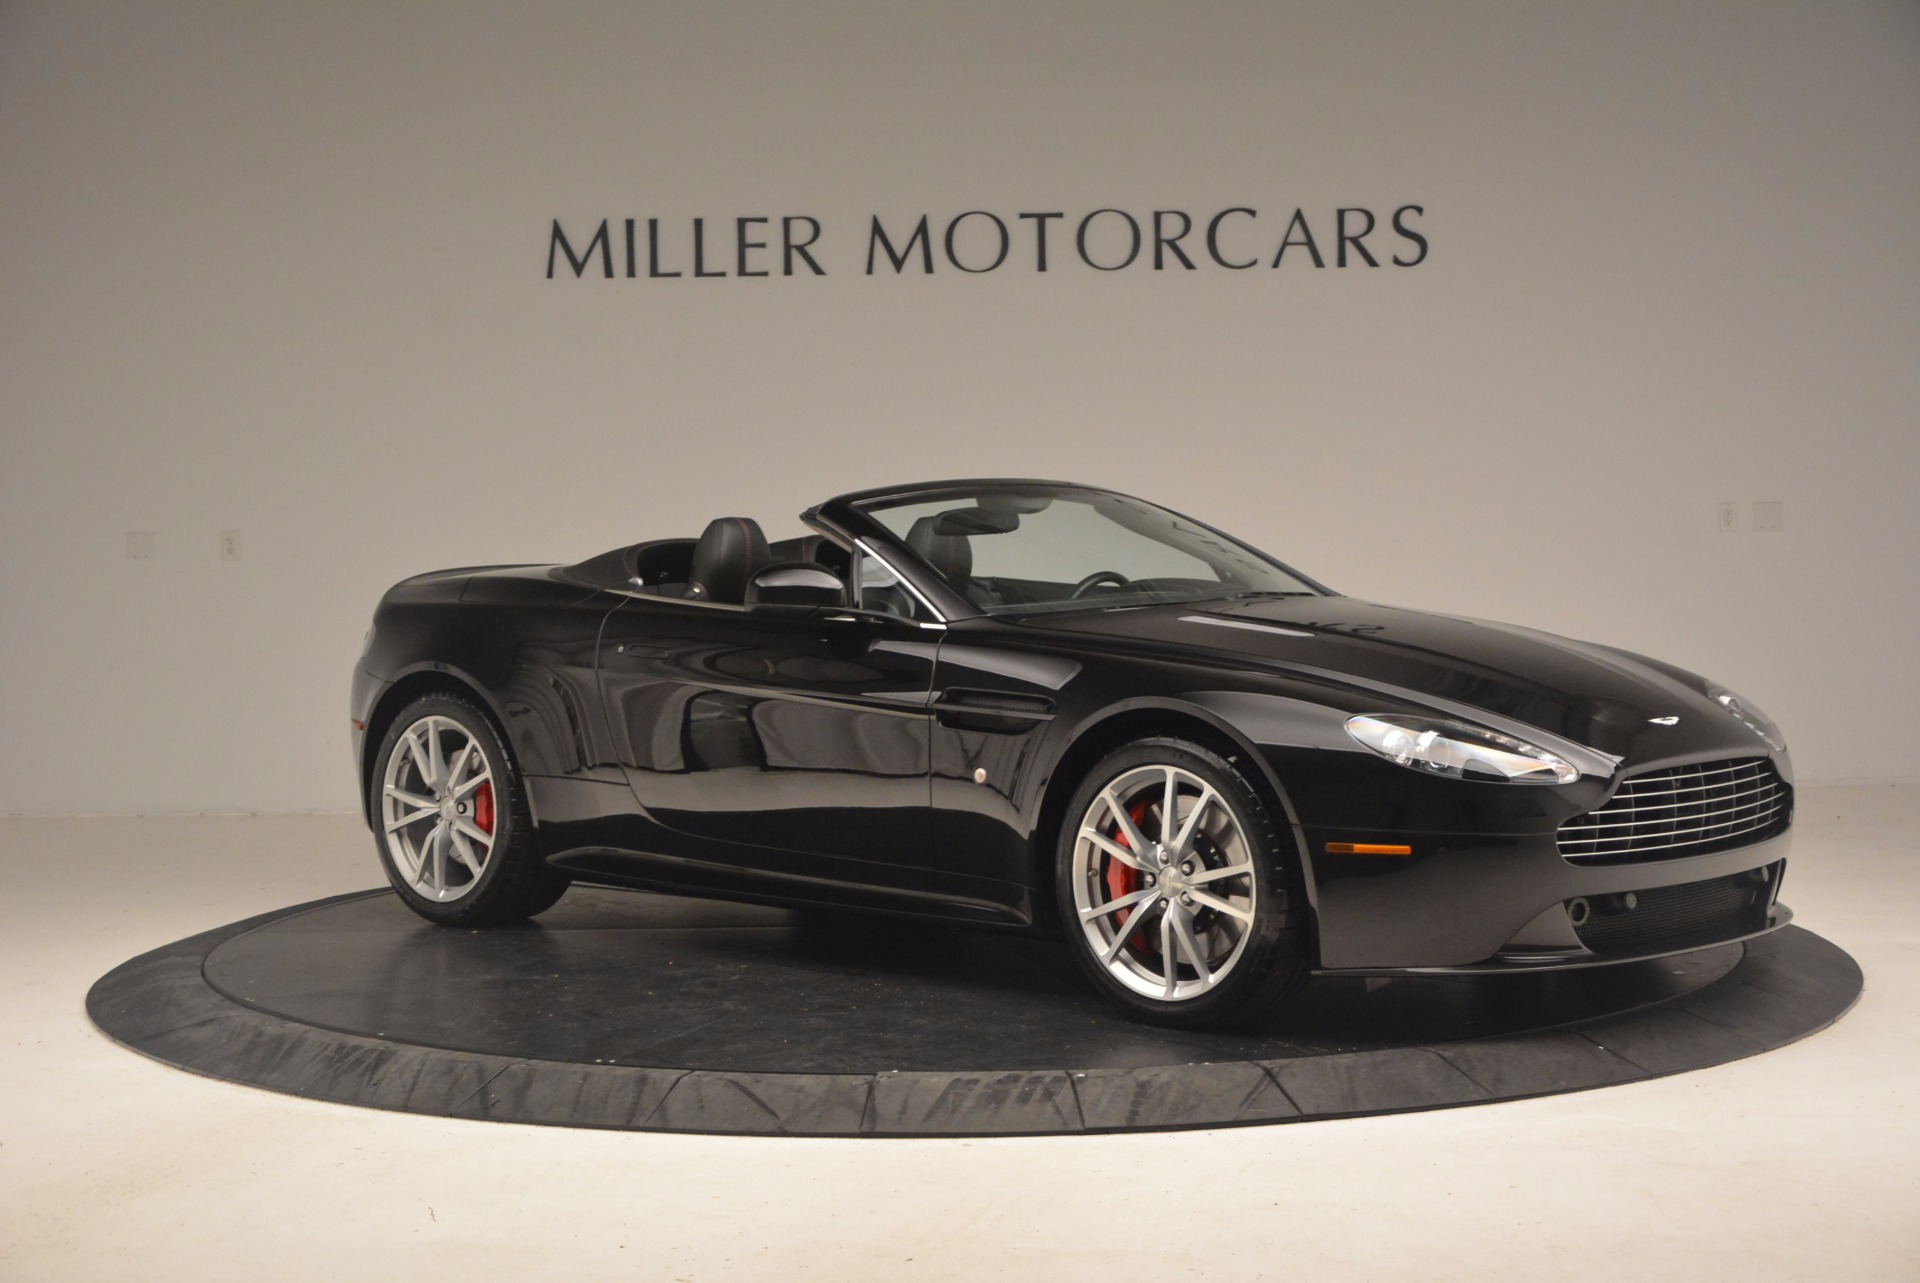 Used 2012 Aston Martin V8 Vantage S Roadster For Sale In Greenwich, CT 1181_p10